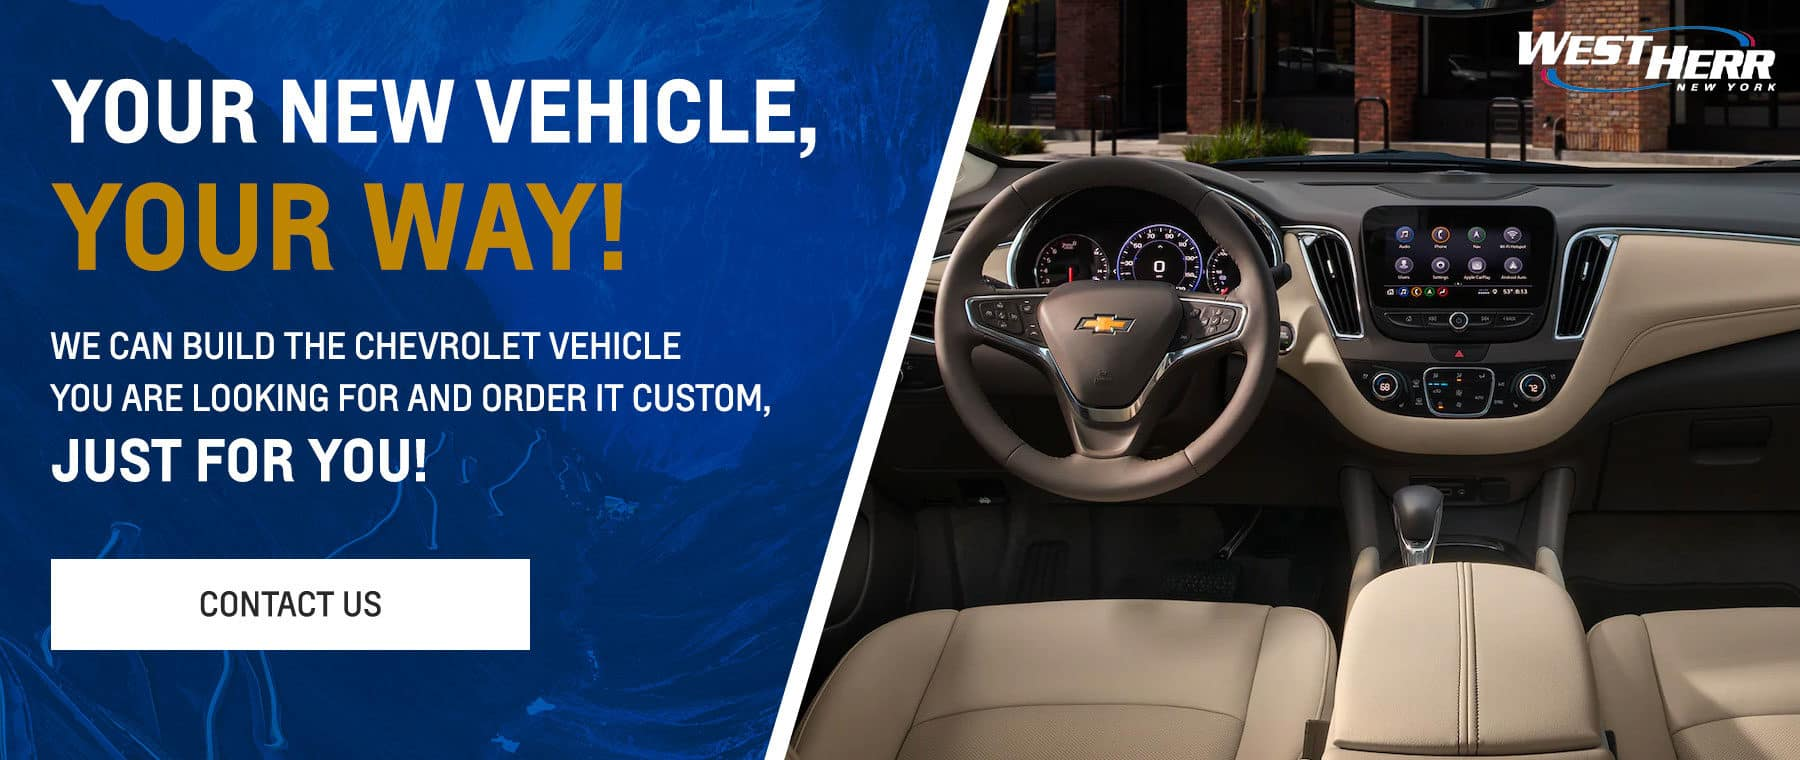 Discover Chevrolet Certified Pre-Owned at West Herr Chevrolet Subtext: The Certified Advantage: